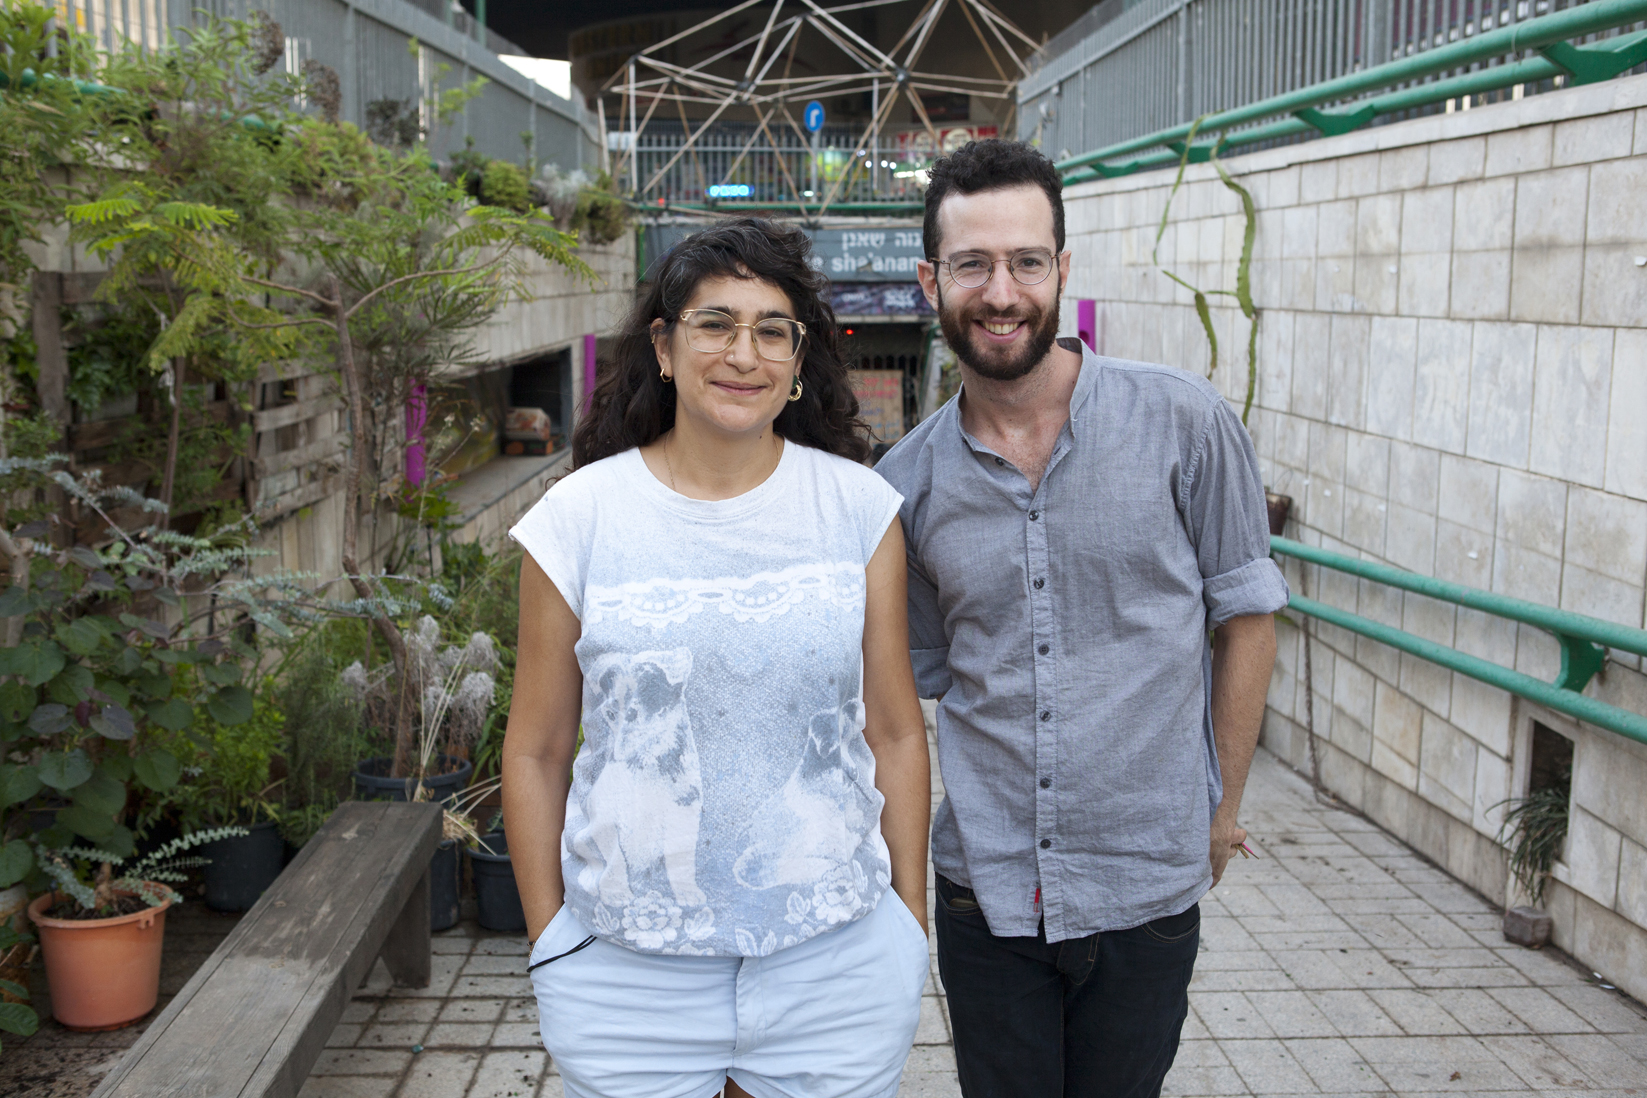 Heela Harel & Yoav Shafranek of the ONYA Collective